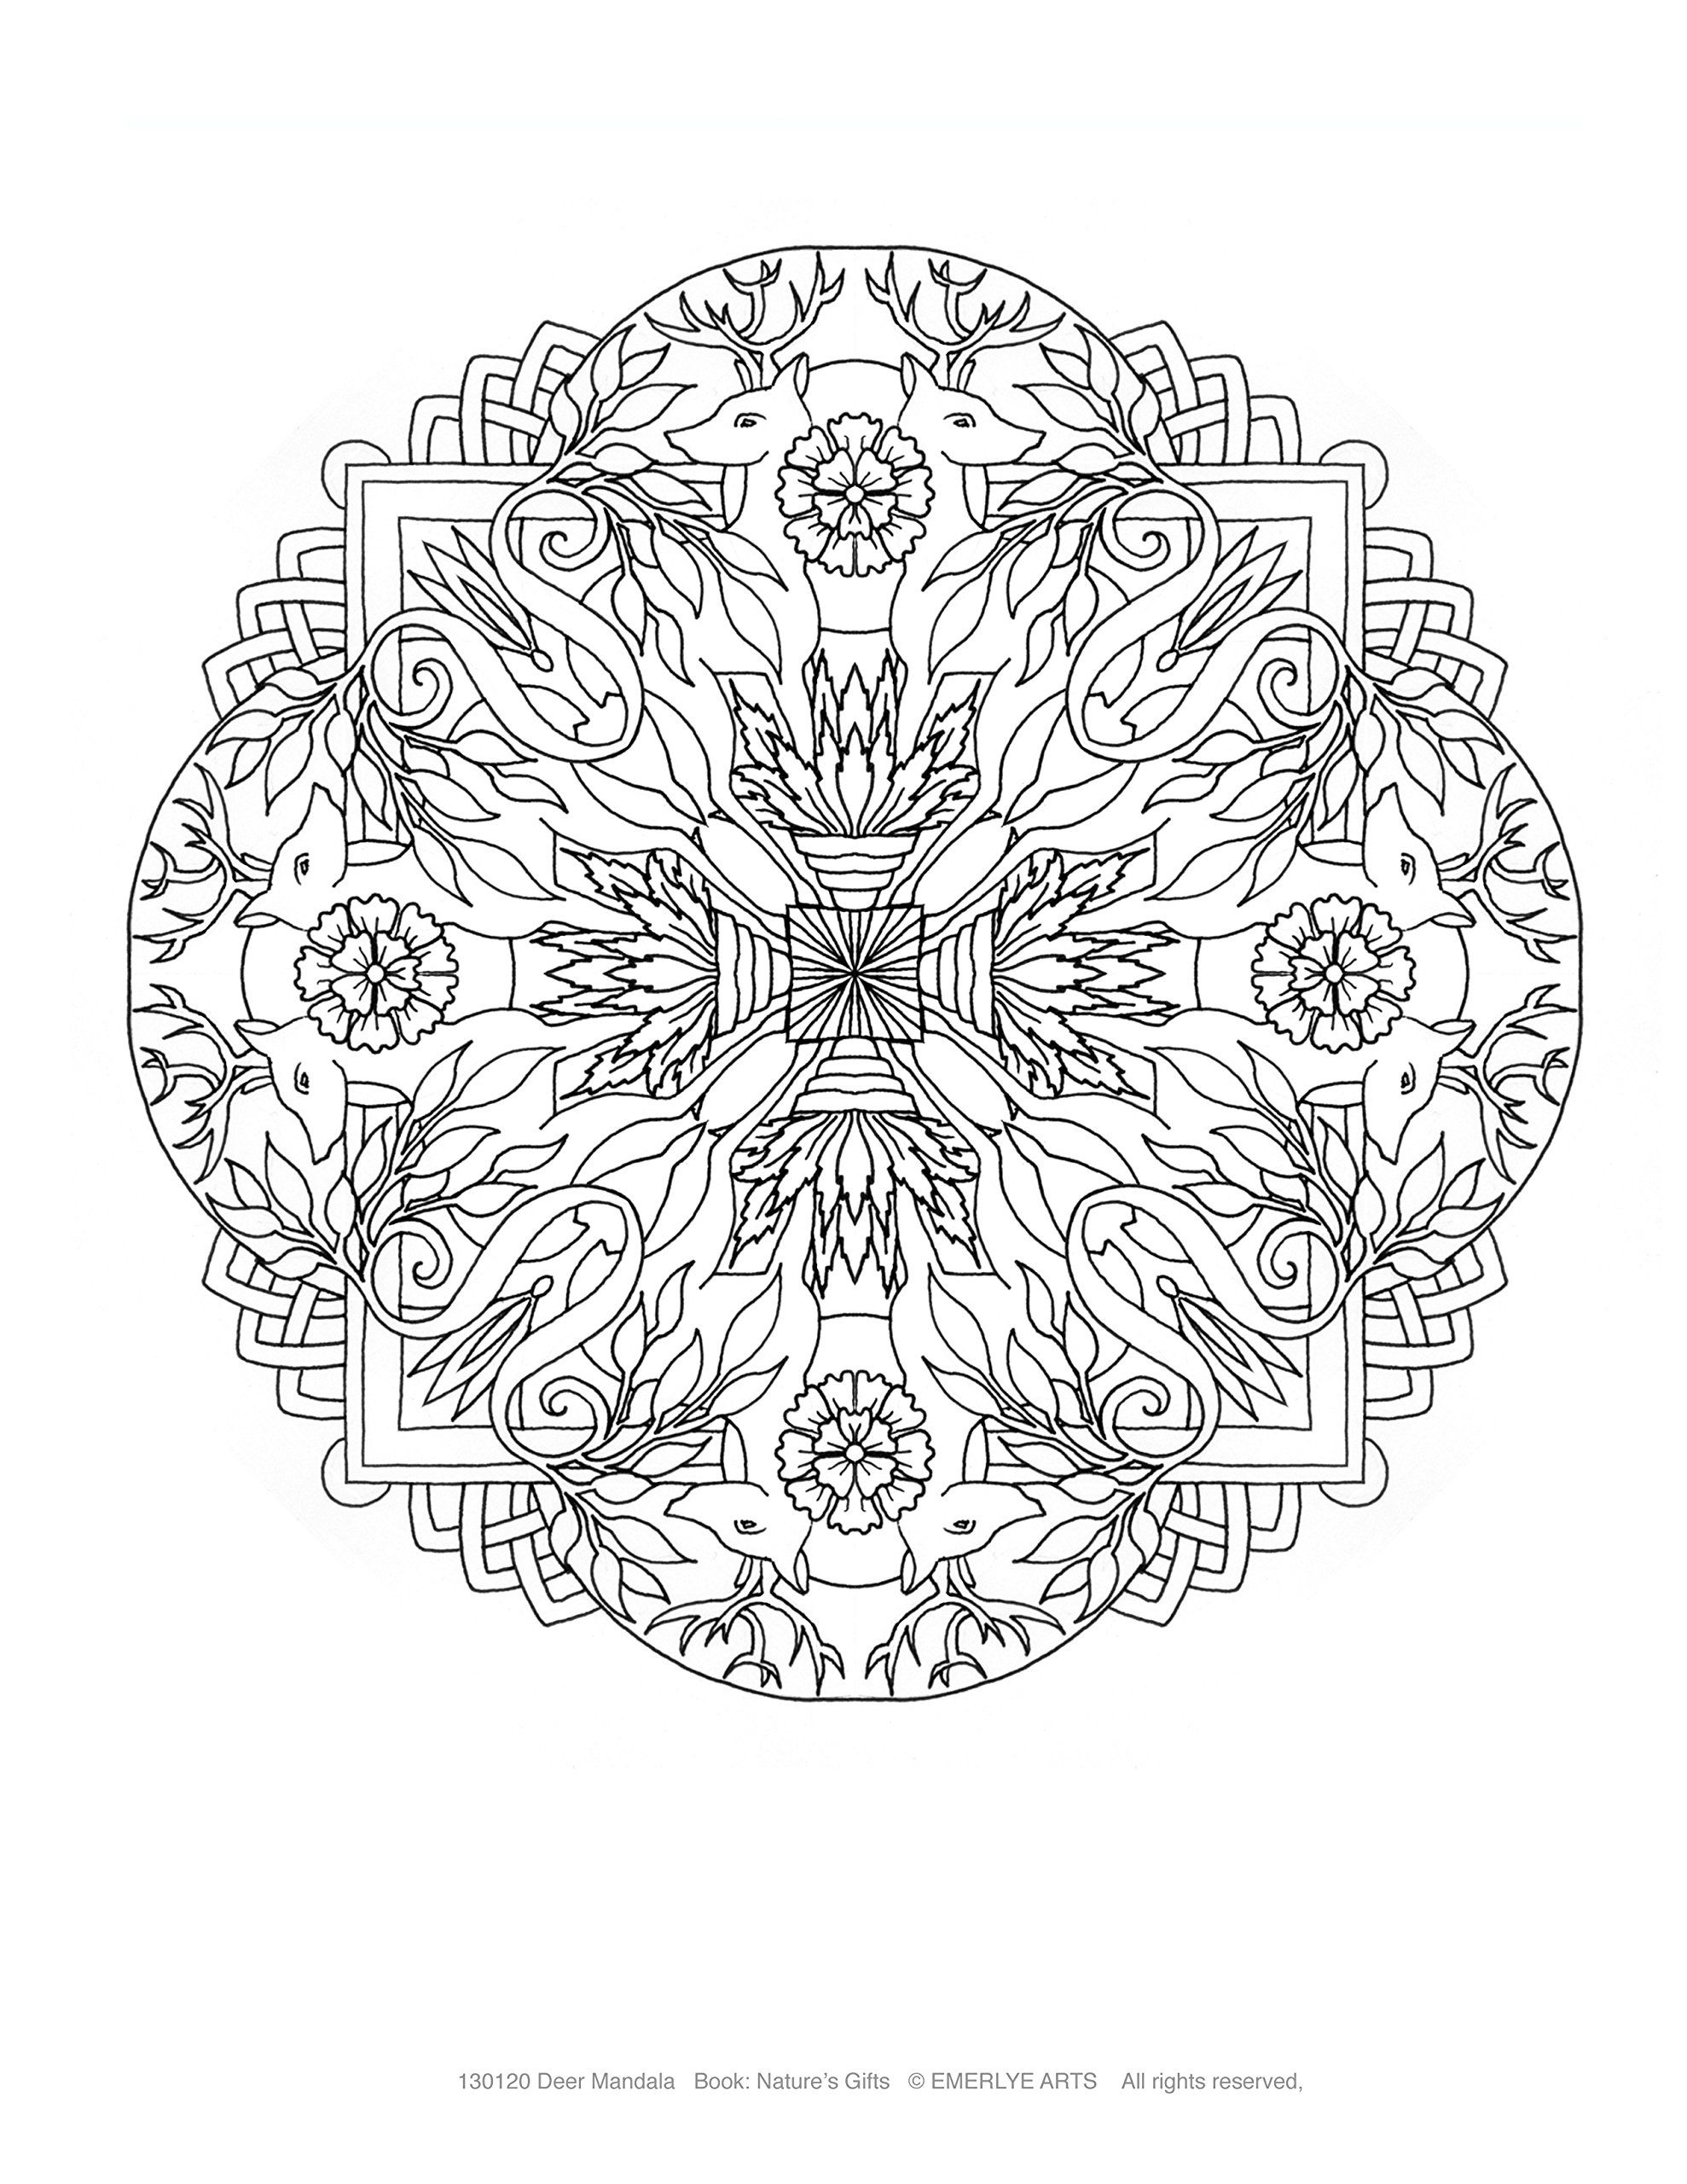 Natureus gifts a collection of complex mandalas for adults to color